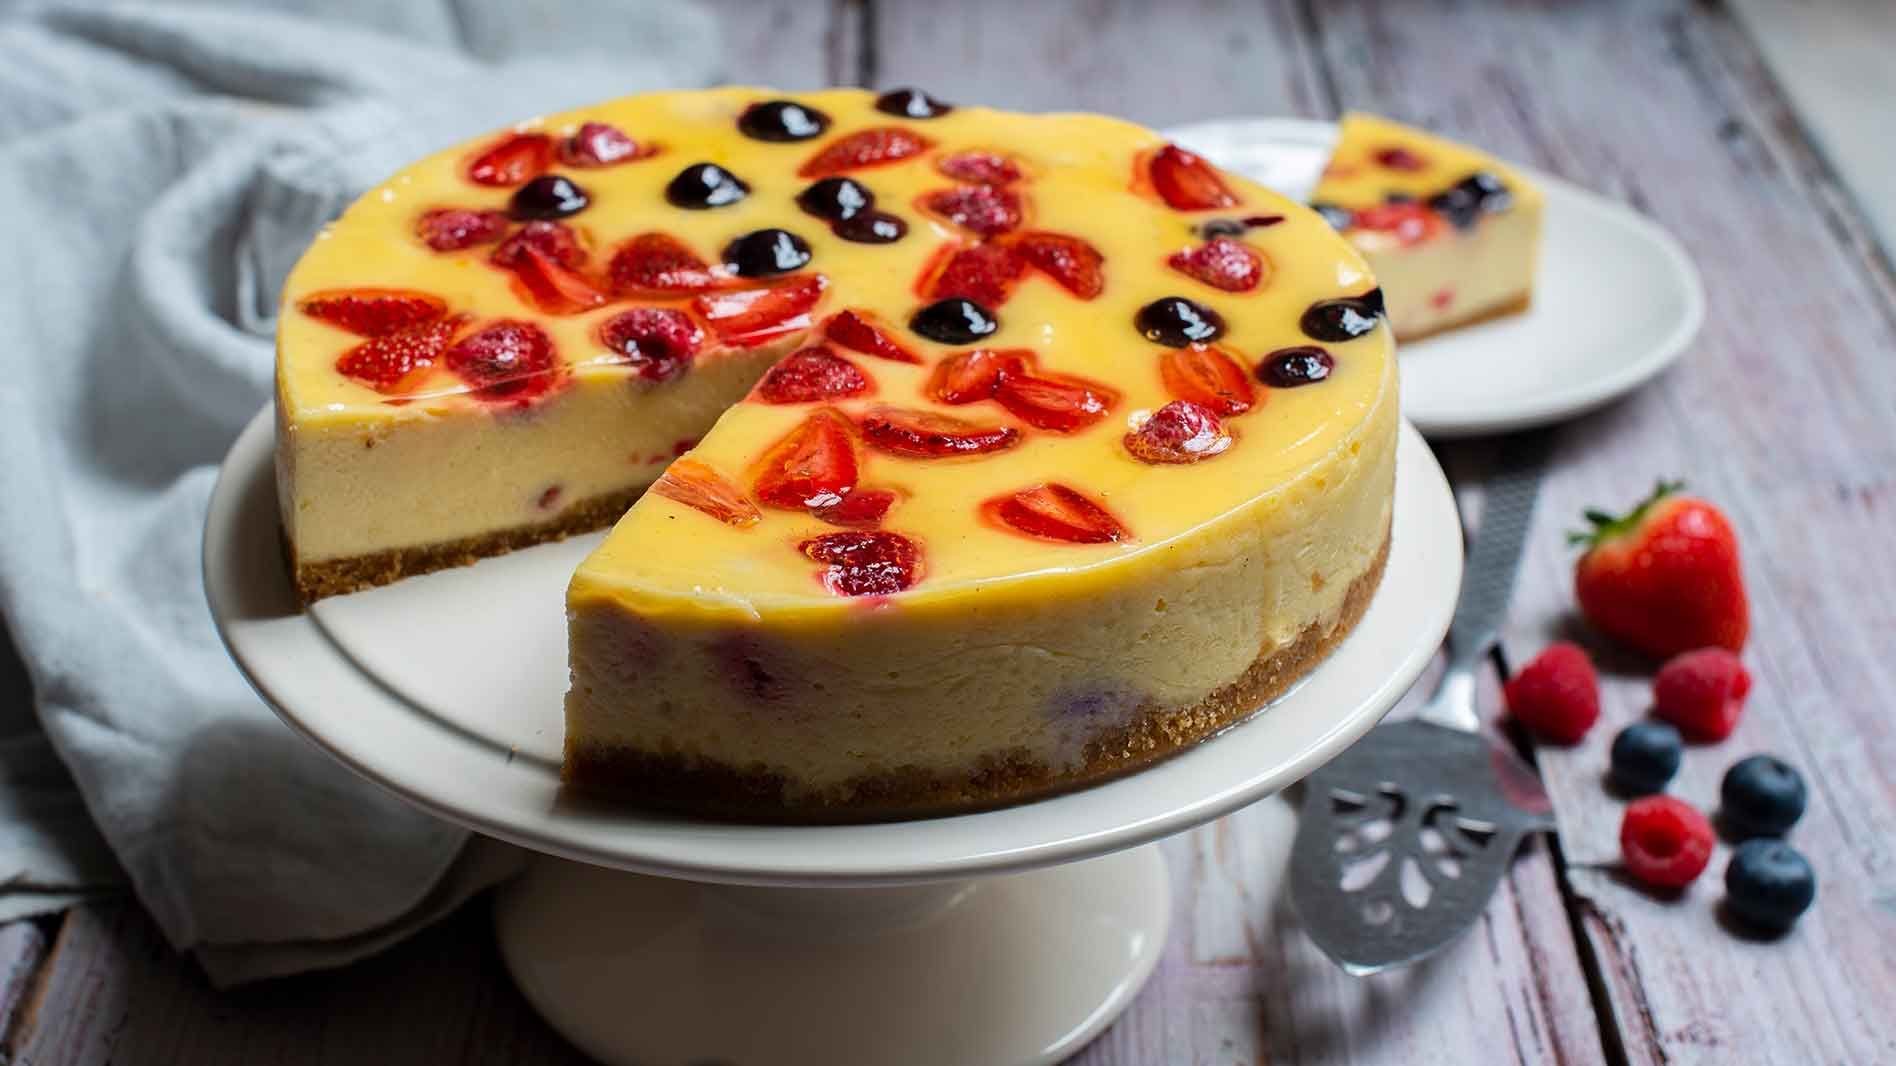 Mixed berry baked cheesecake